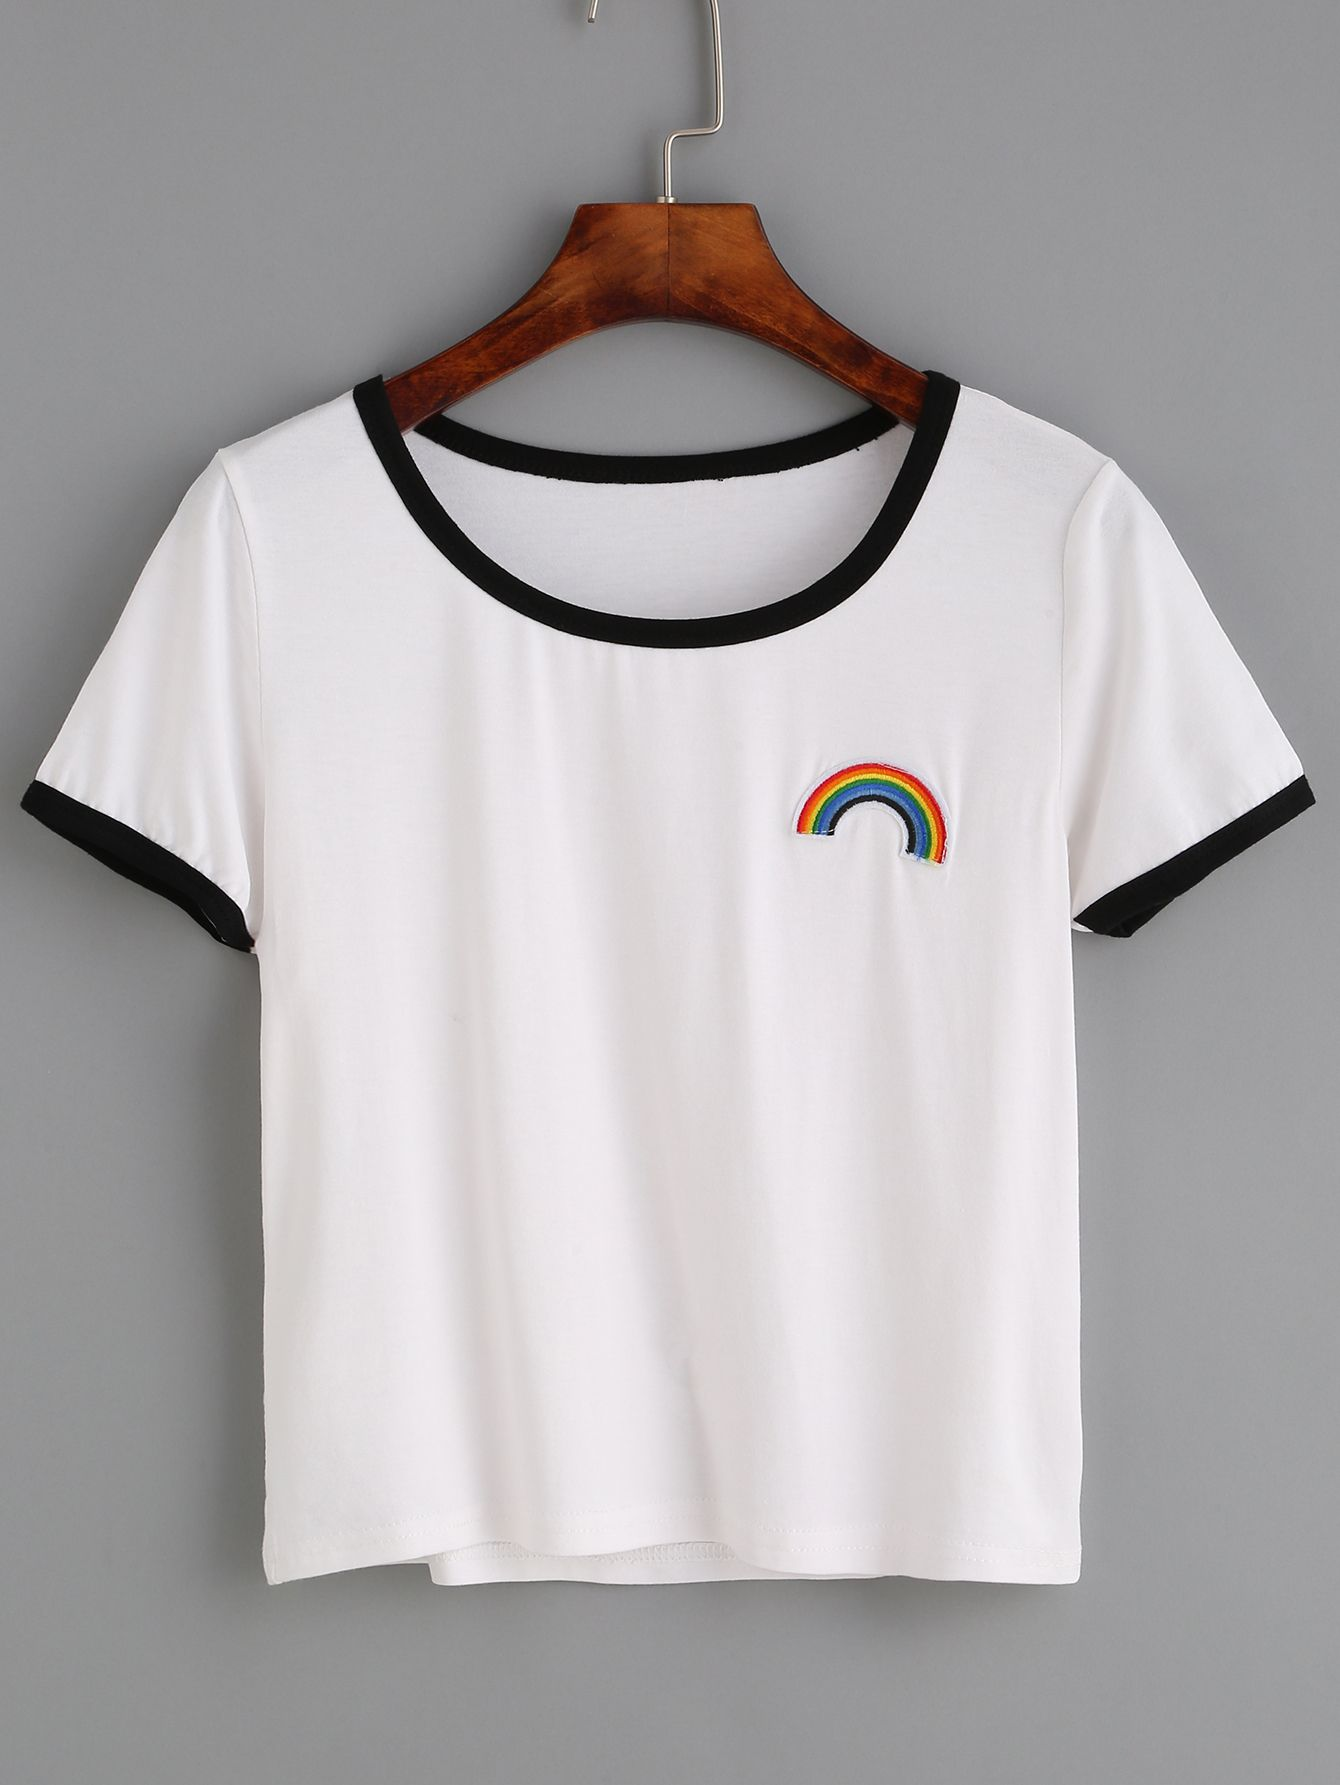 7b4132c5d1 Shop White Contrast Trim Rainbow Embroidered T-shirt online. SheIn offers  White Contrast Trim Rainbow Embroidered T-shirt & more to fit your  fashionable ...